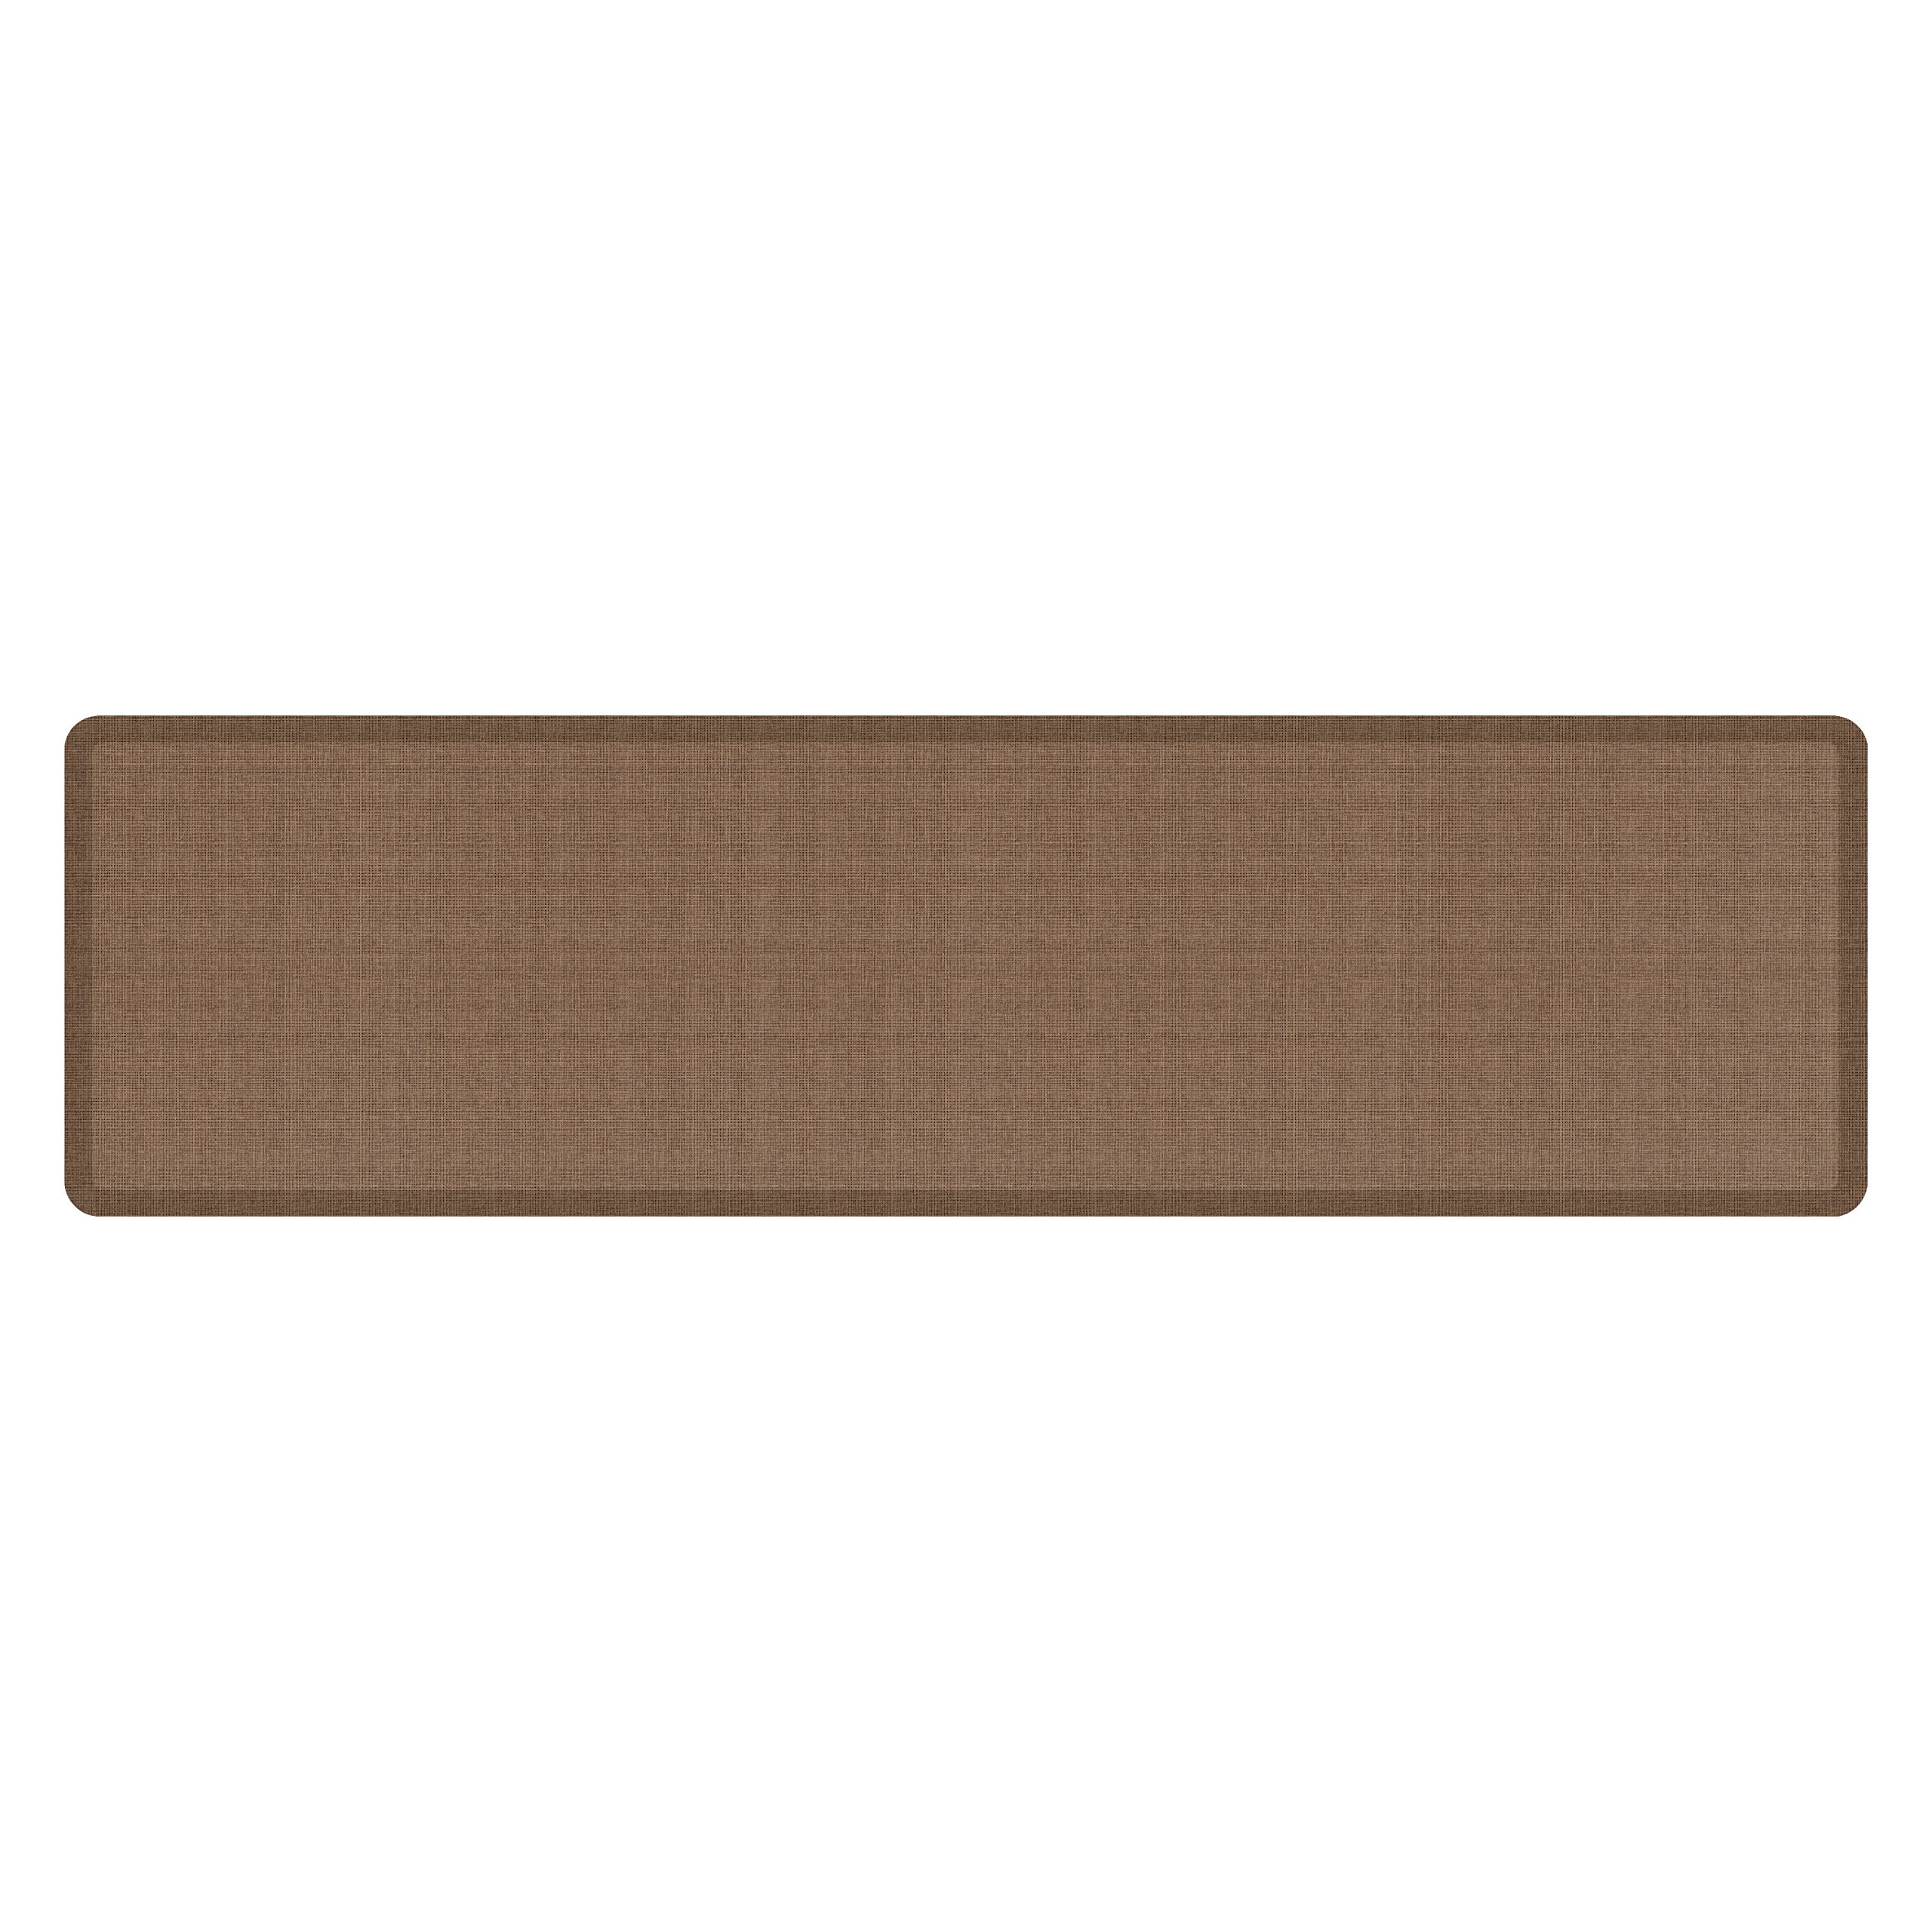 """NewLife by GelPro Anti-Fatigue Designer Comfort Kitchen Floor Mat, 30x108'', Tweed Light Walnut Stain Resistant Surface with 3/4"""" Thick Ergo-foam Core for Health and Wellness by NewLife by GelPro (Image #1)"""